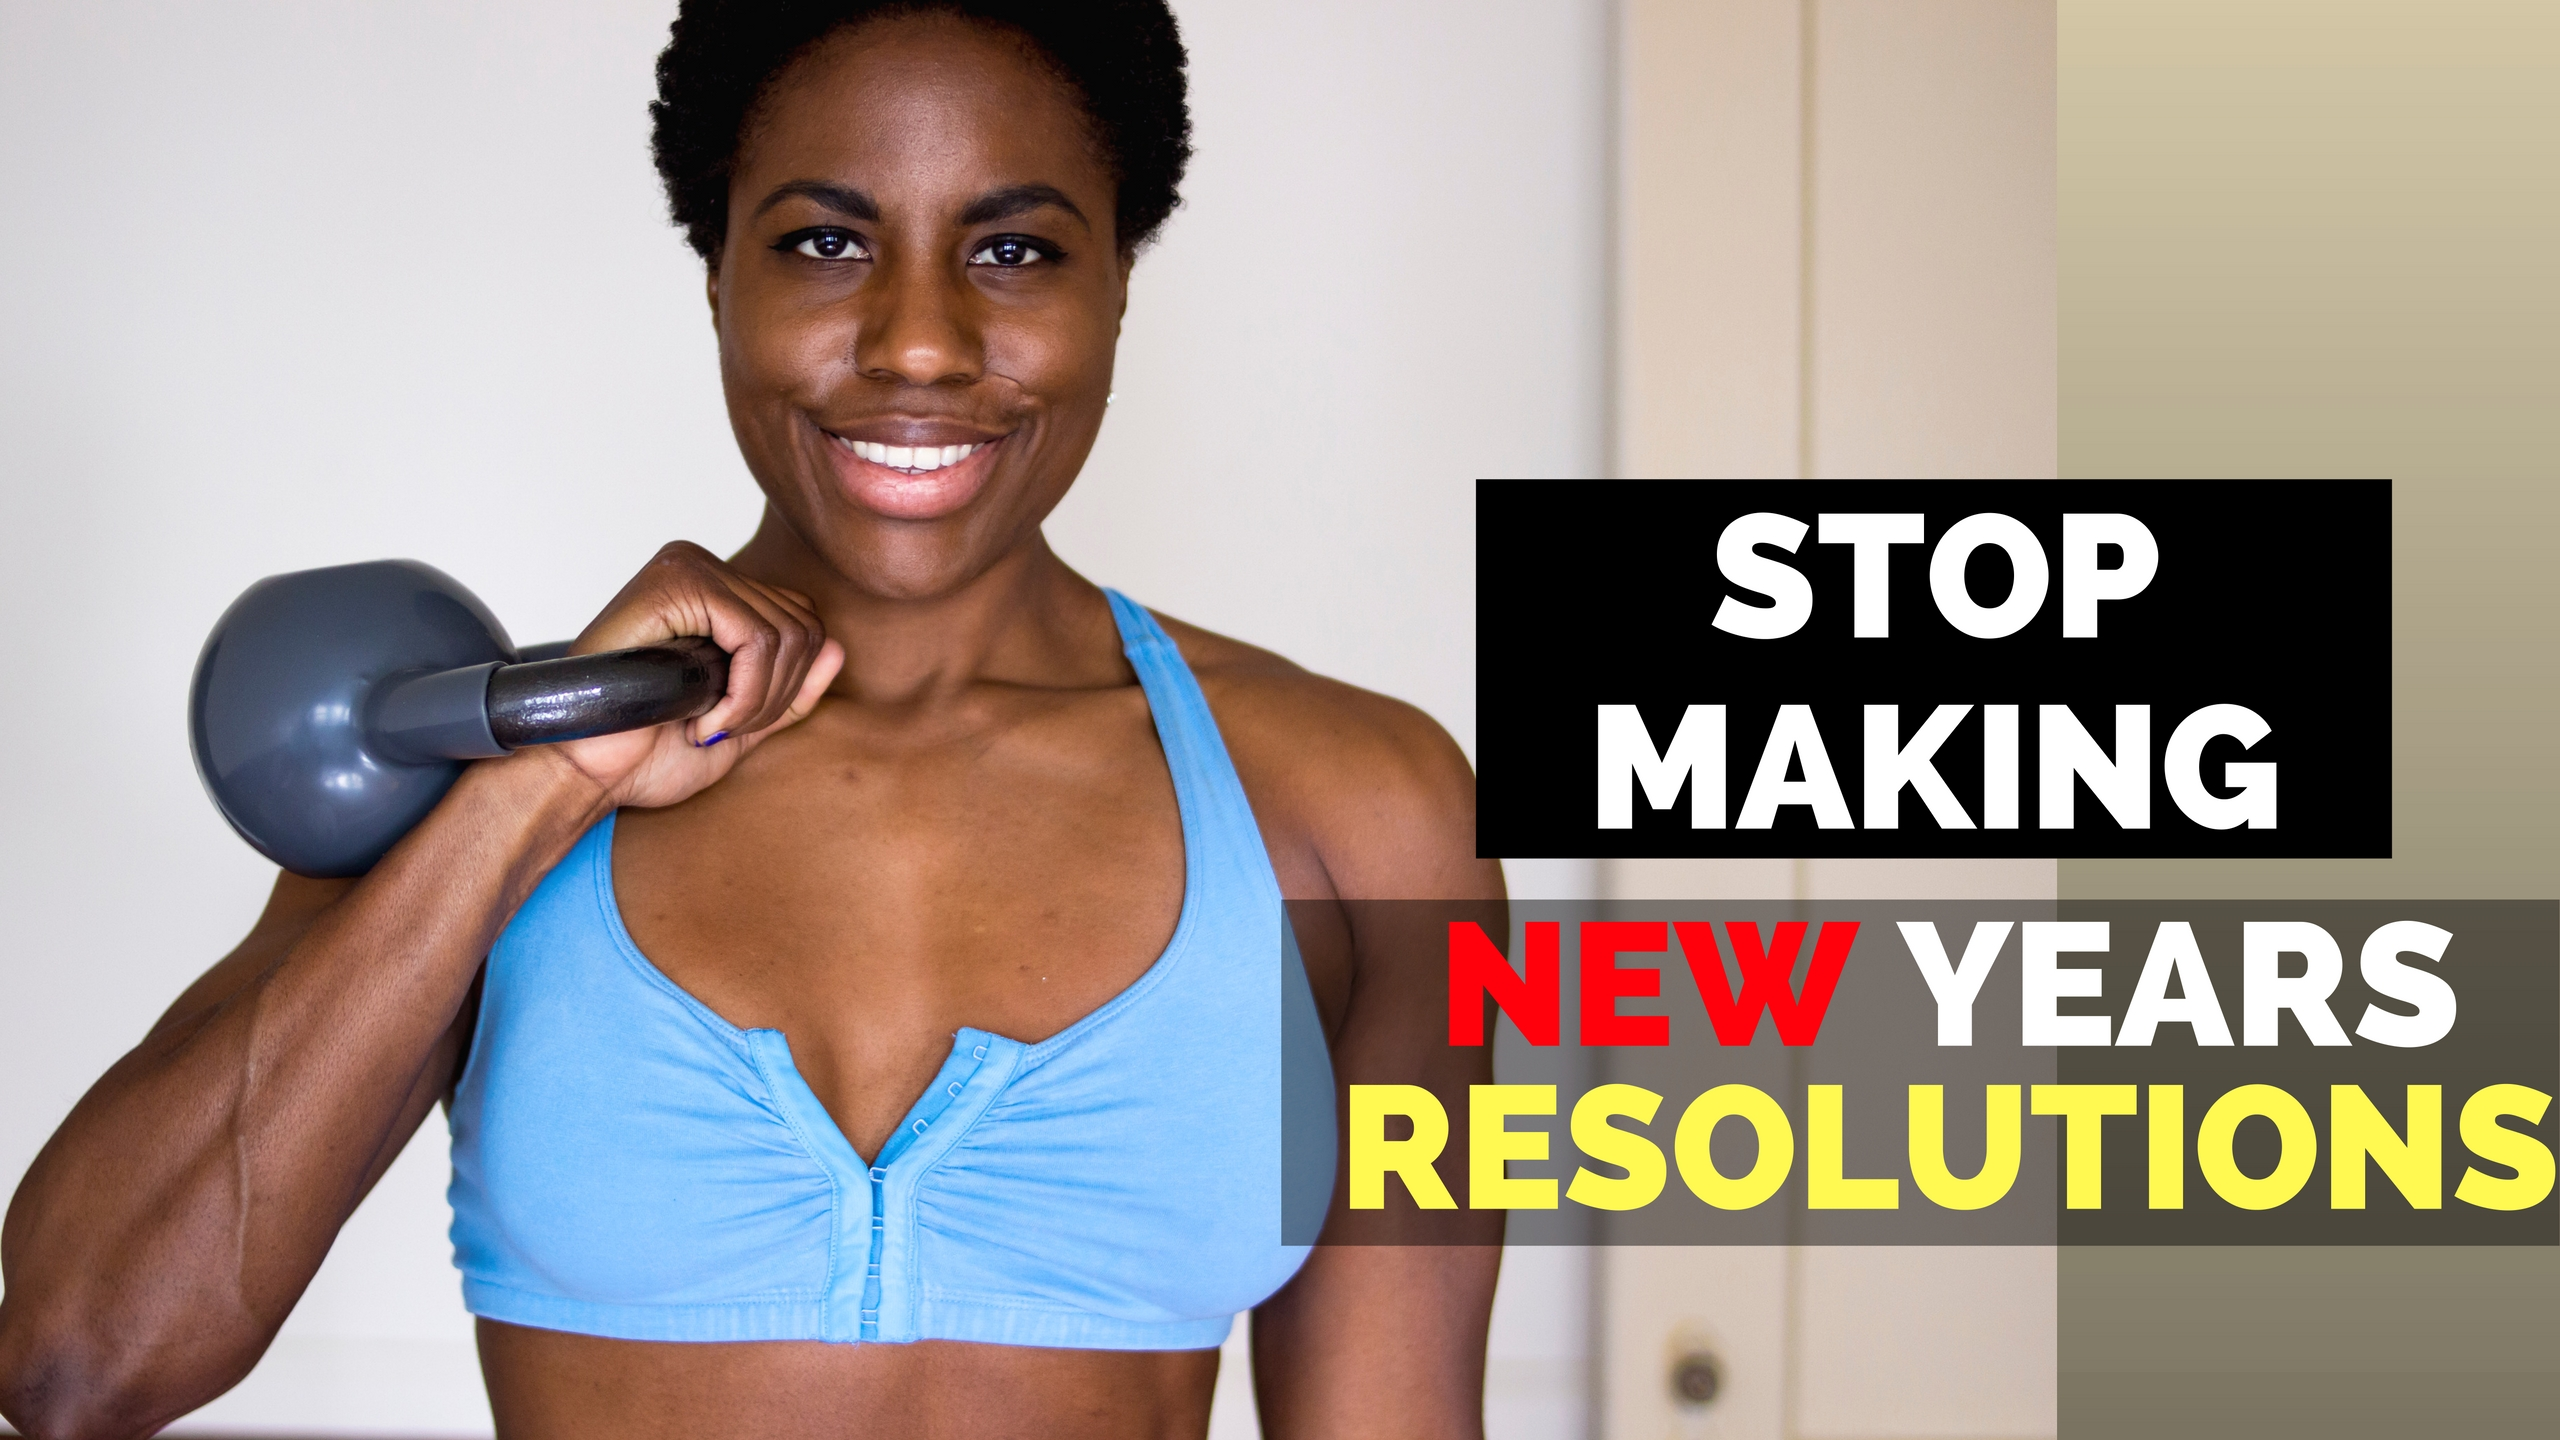 7 Day New Year's ANTI-RESOLUTION Jump Start Intensive! Let's GO!